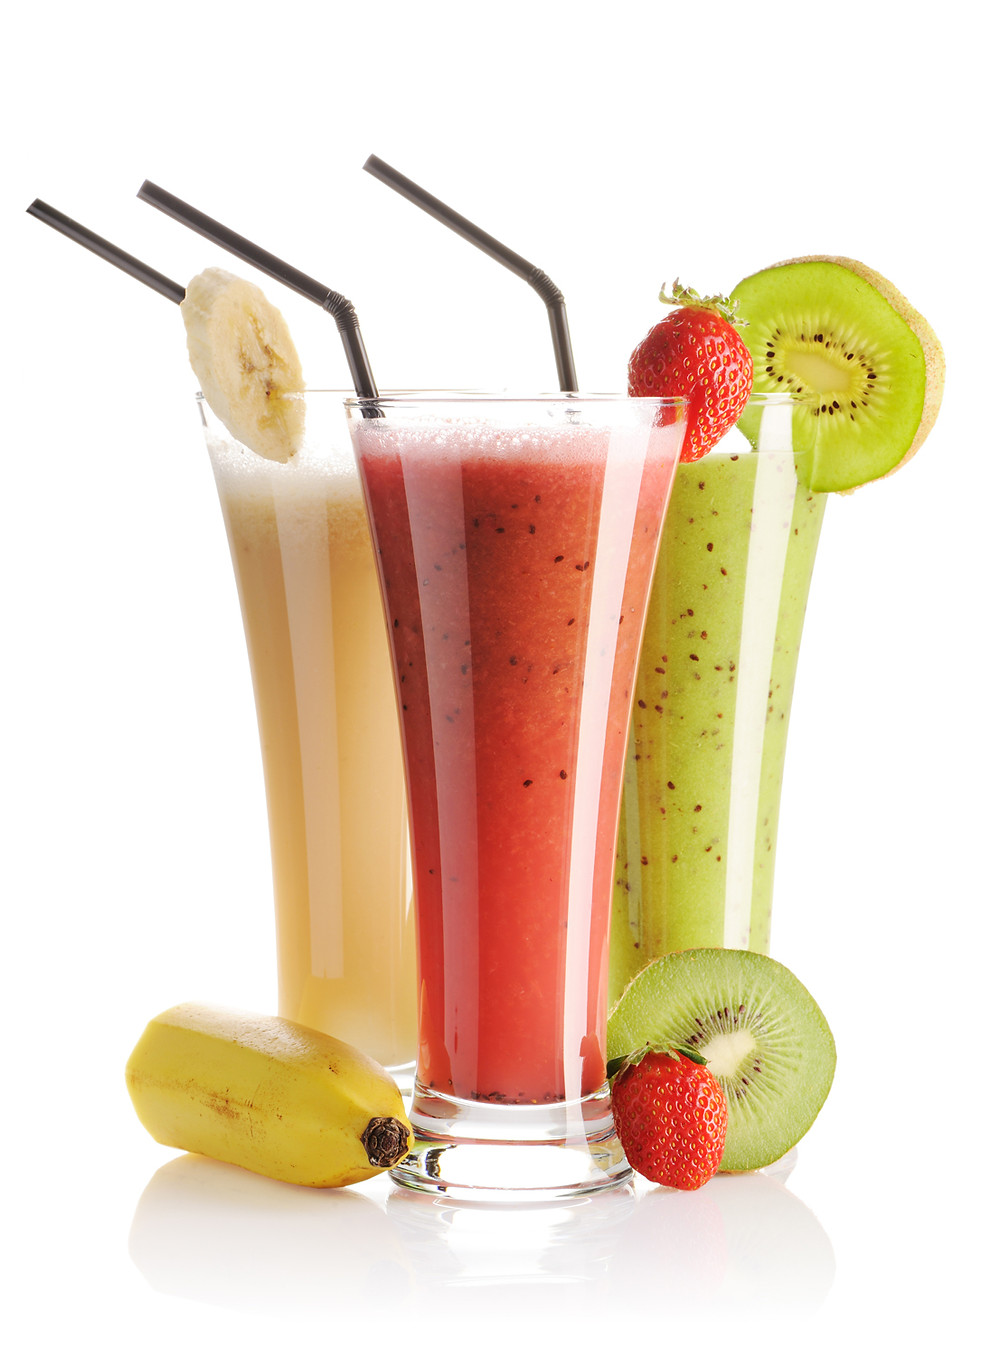 Breakfast smoothies are a healthy way to start the day.